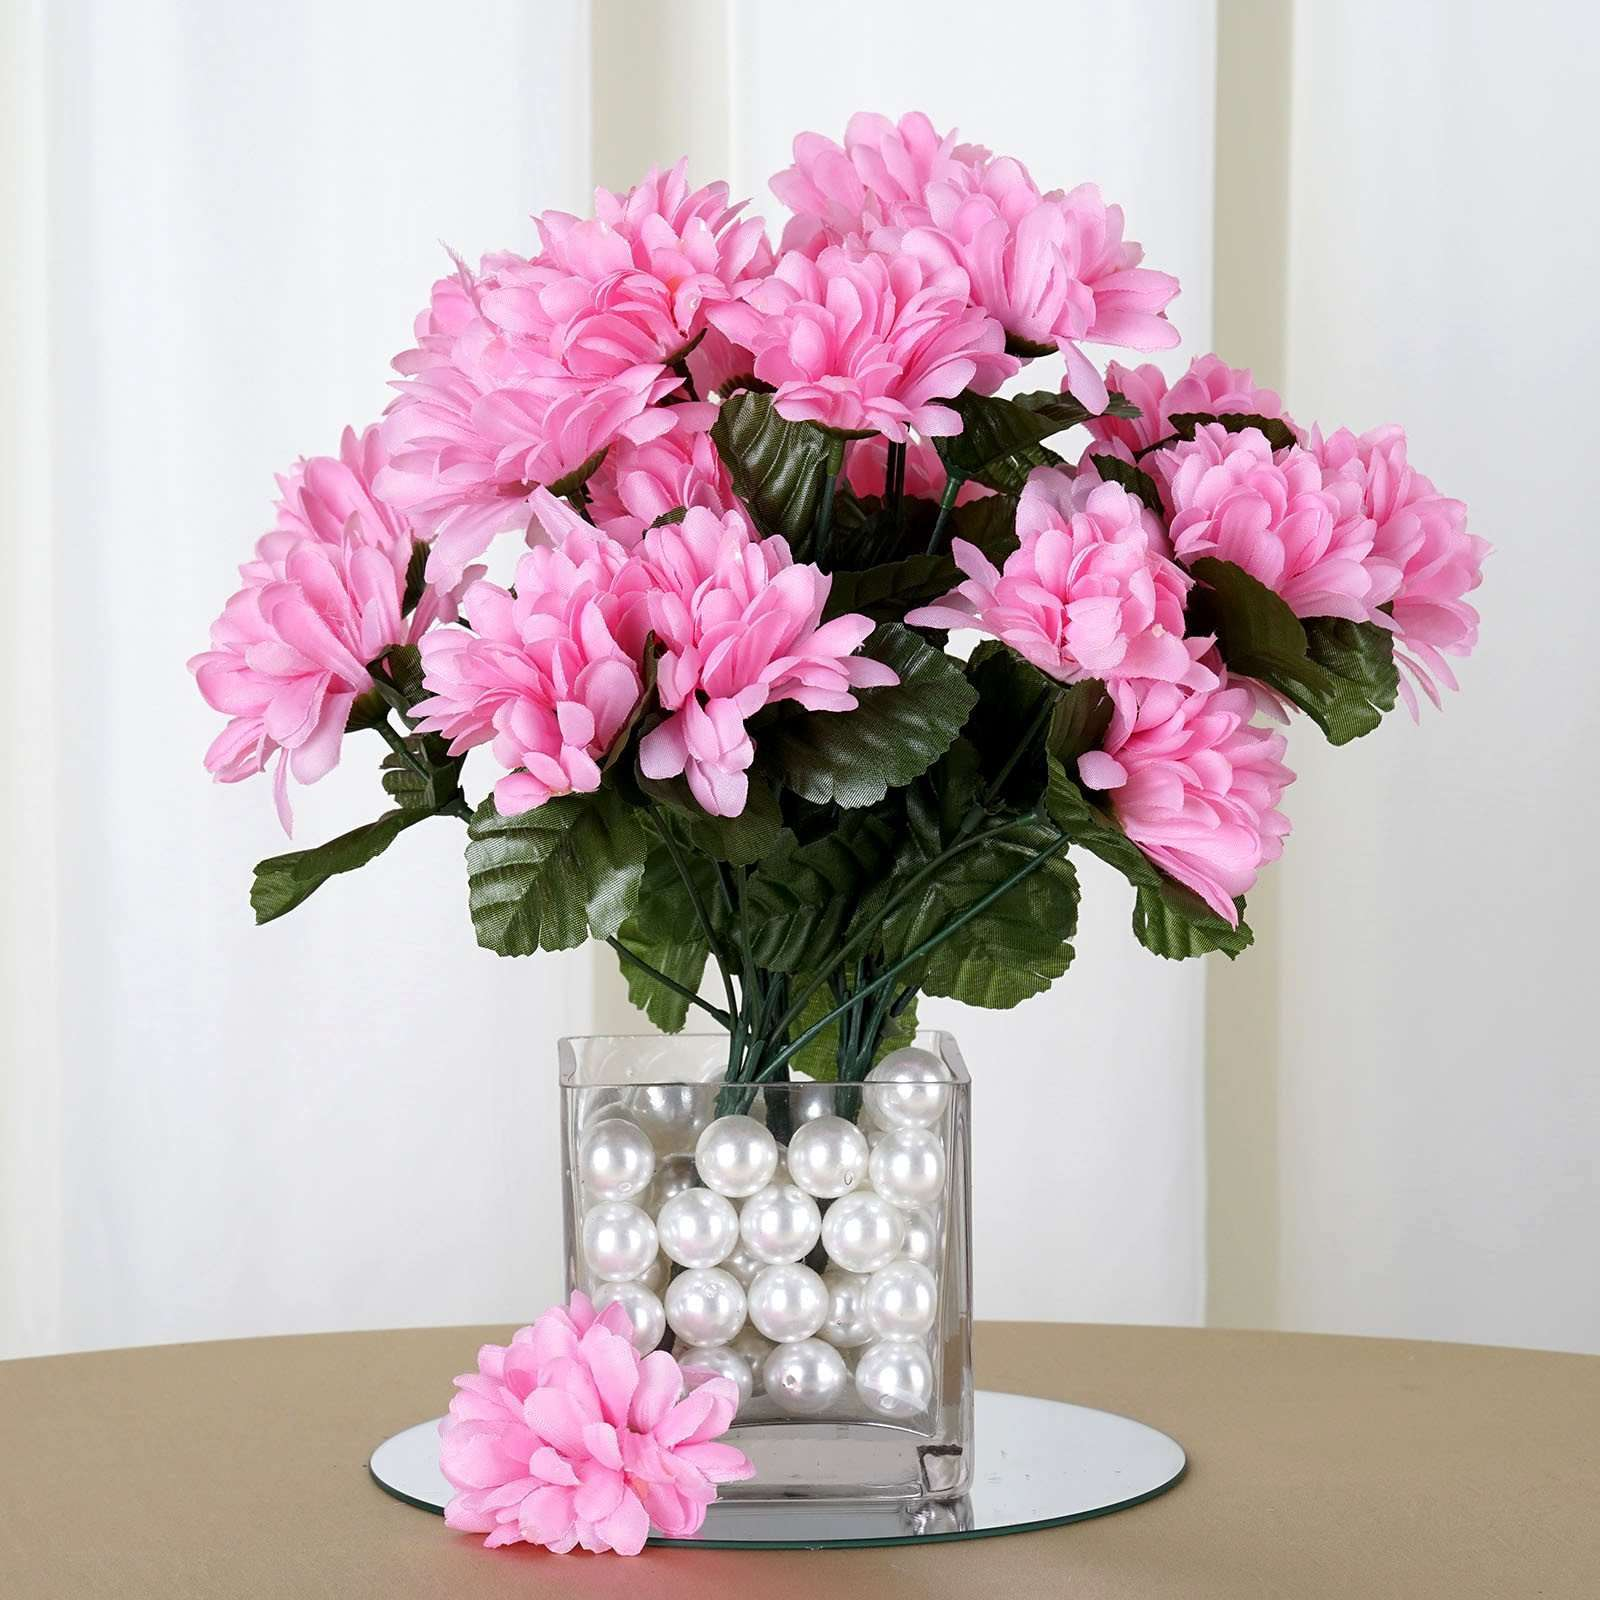 12 Bush 84 Pcs Pink Artificial Silk Chrysanthemum Flower Bridal